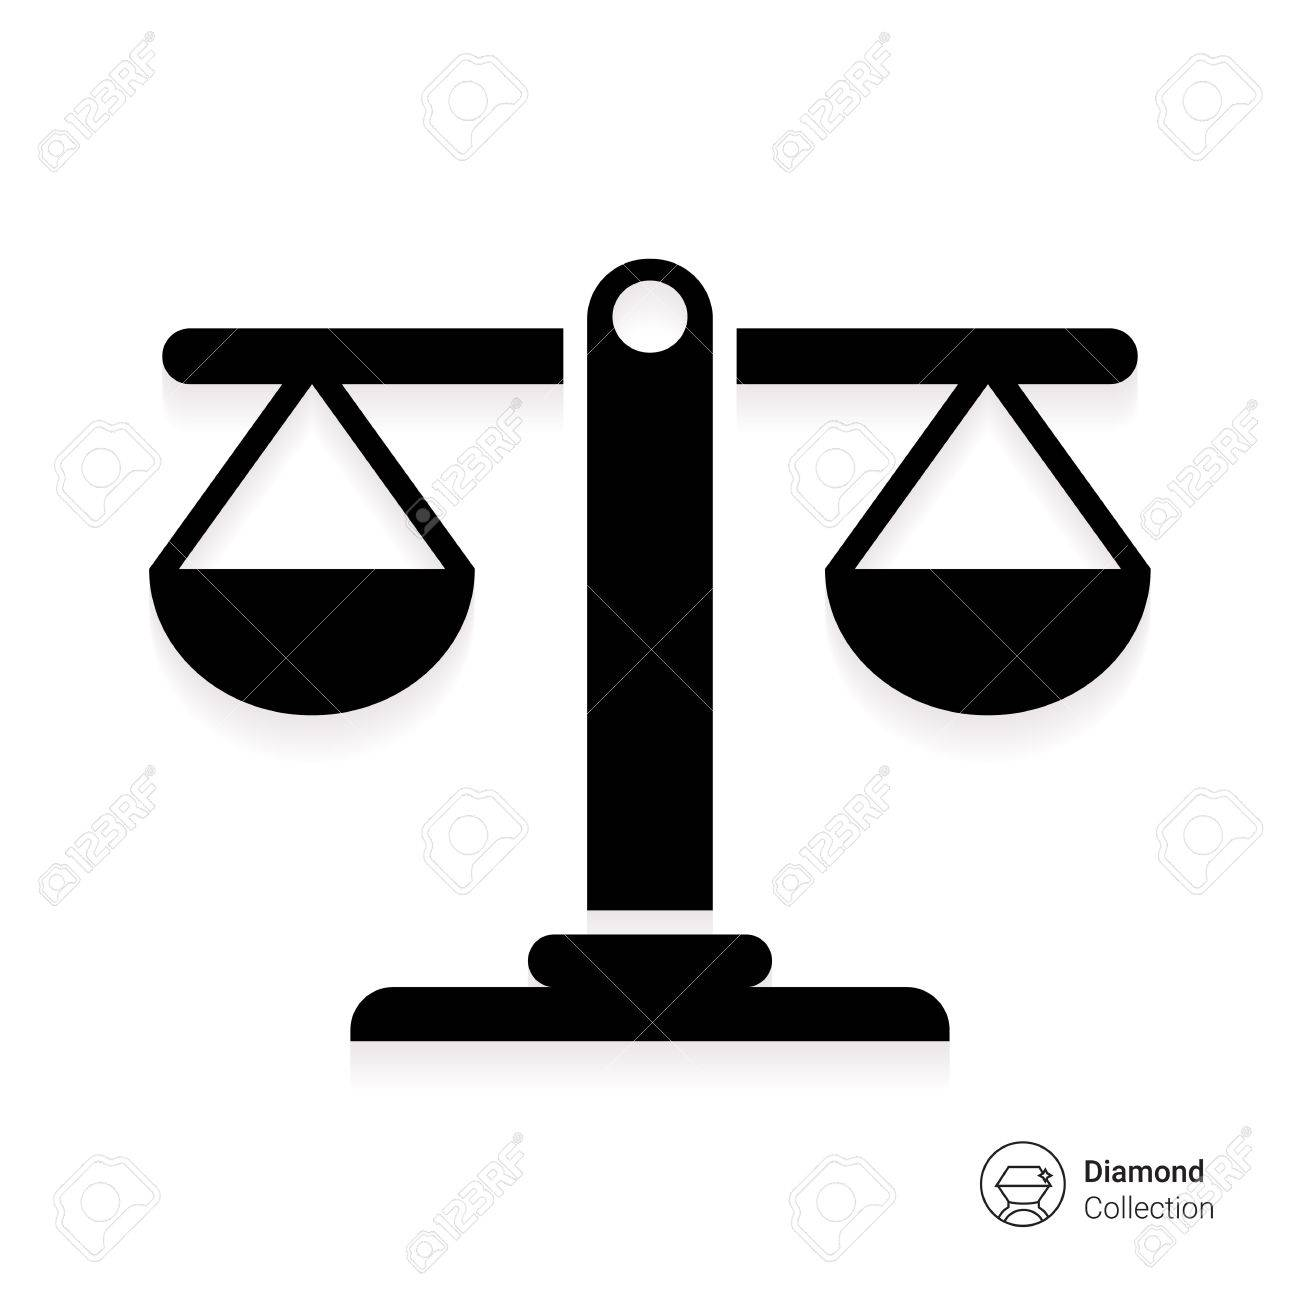 Icon Of Balanced Scales Royalty Free Cliparts, Vectors, And Stock ...